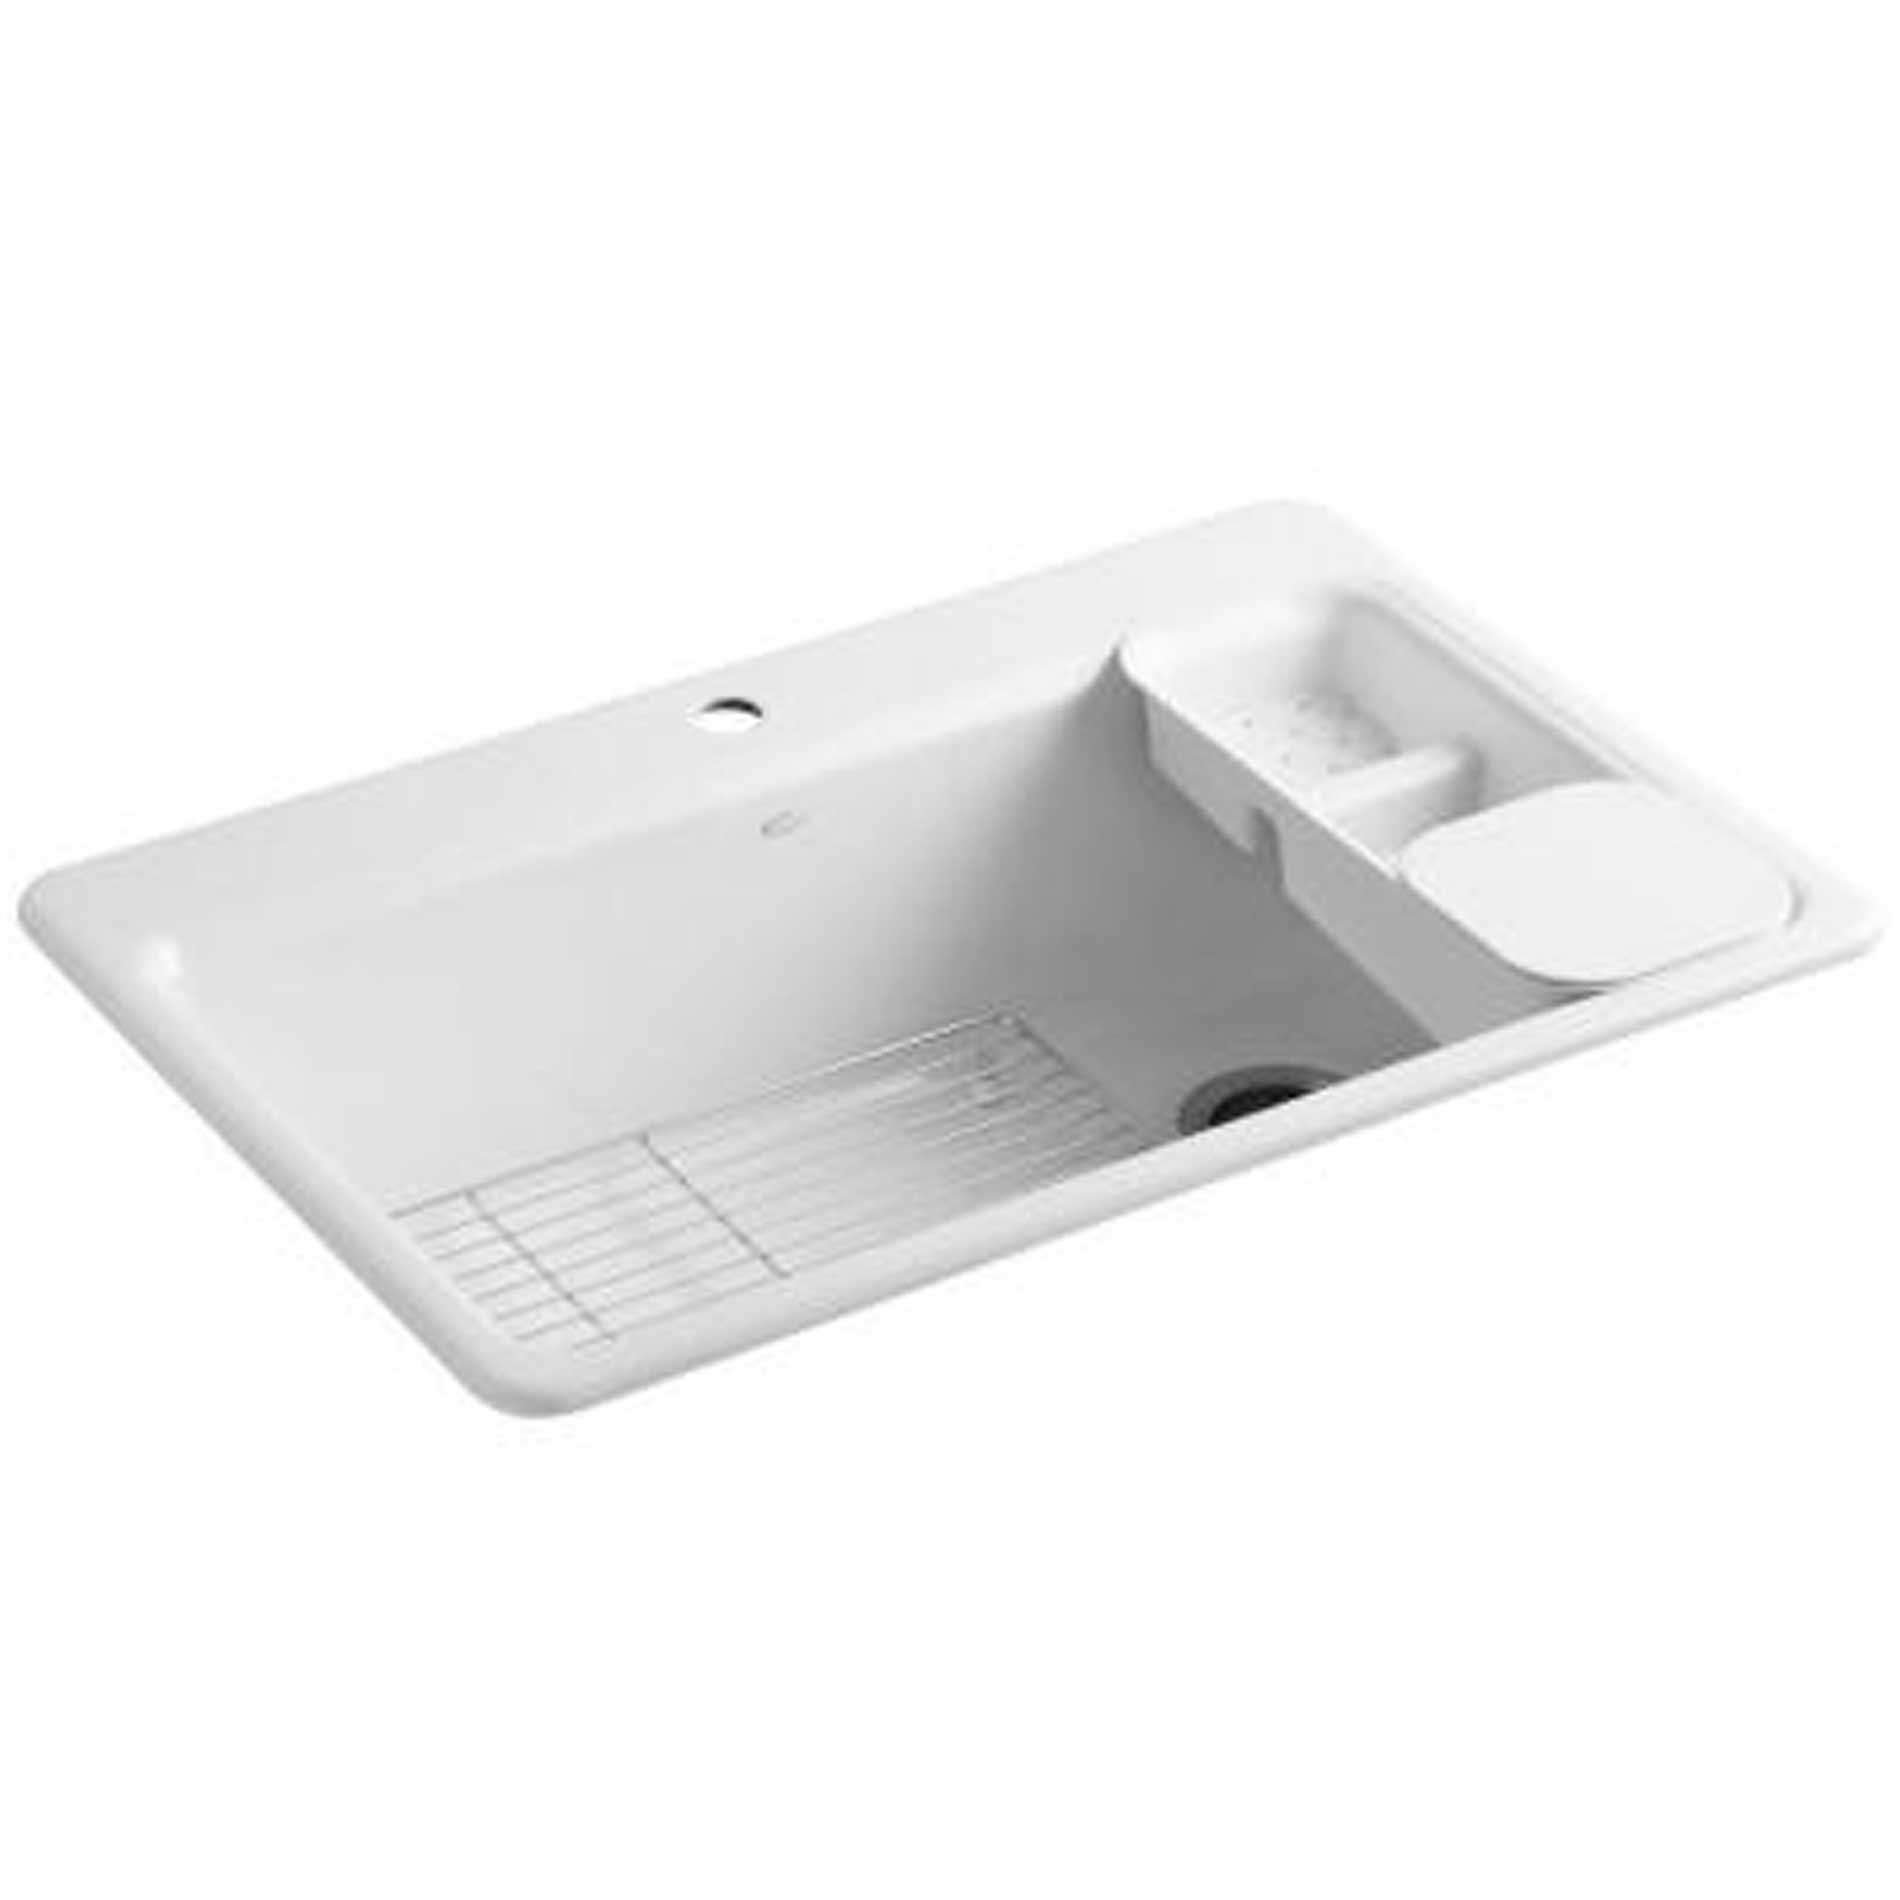 Picture of Riverby 5871 Inset Cast Iron Sink